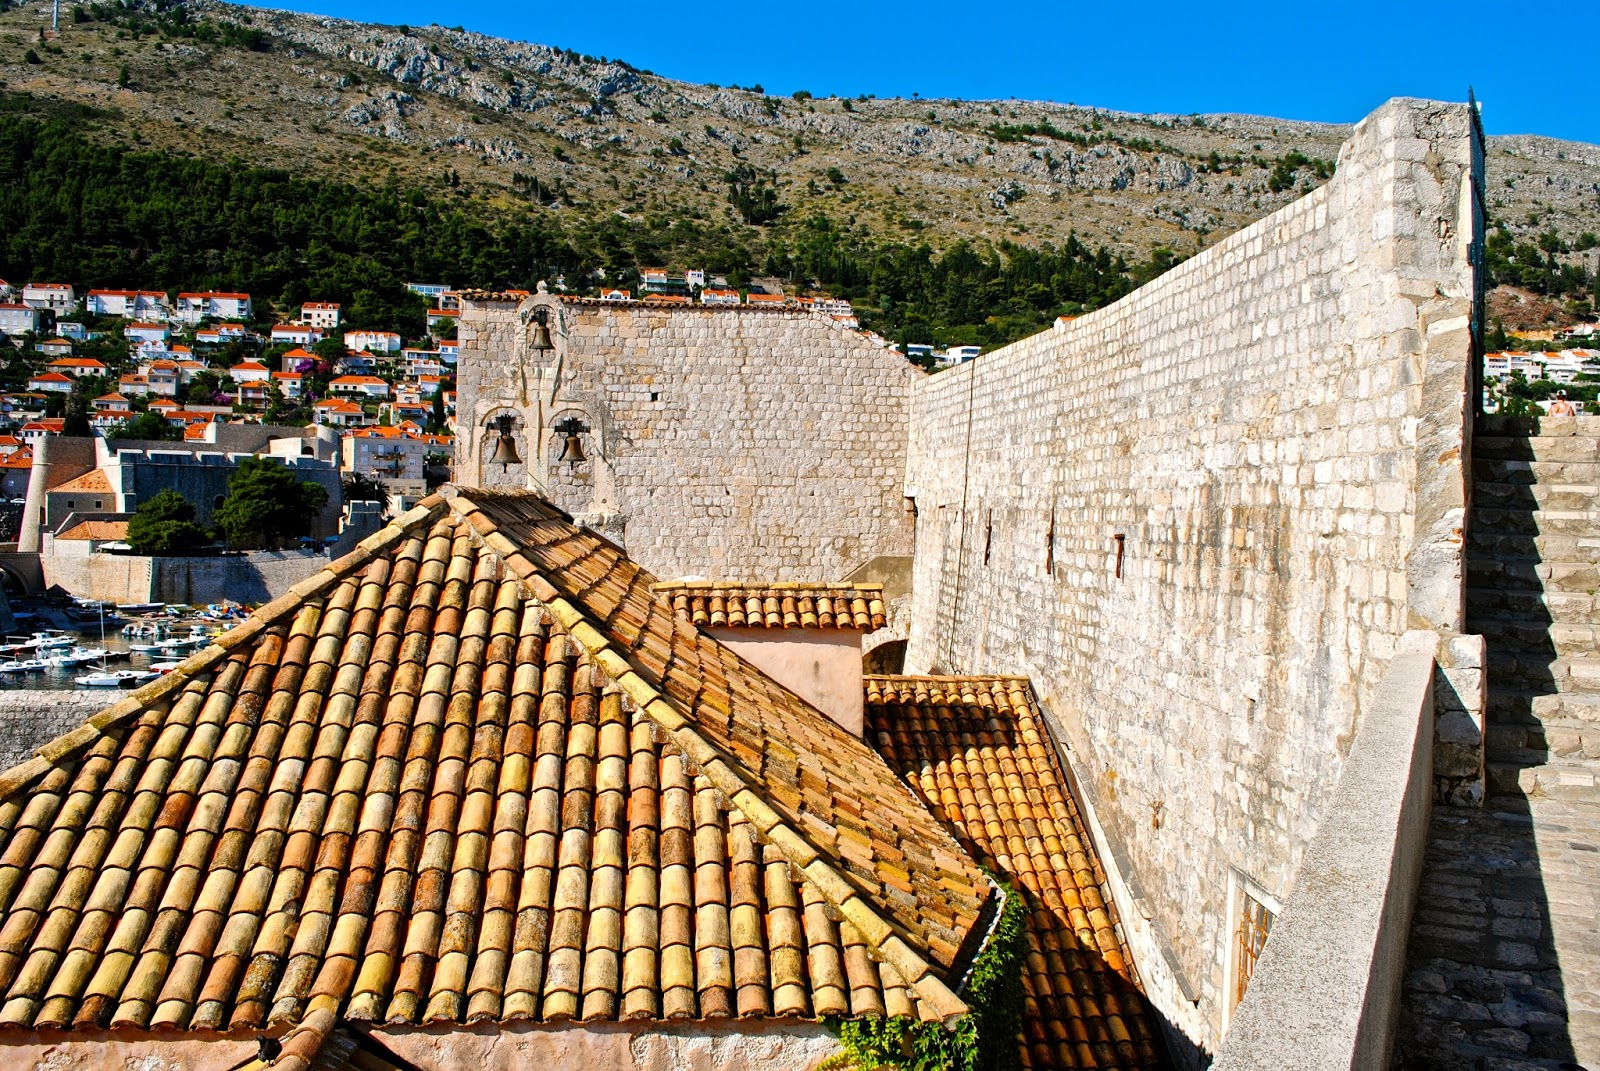 Views walking the old town walls in Dubrovnik Croatia